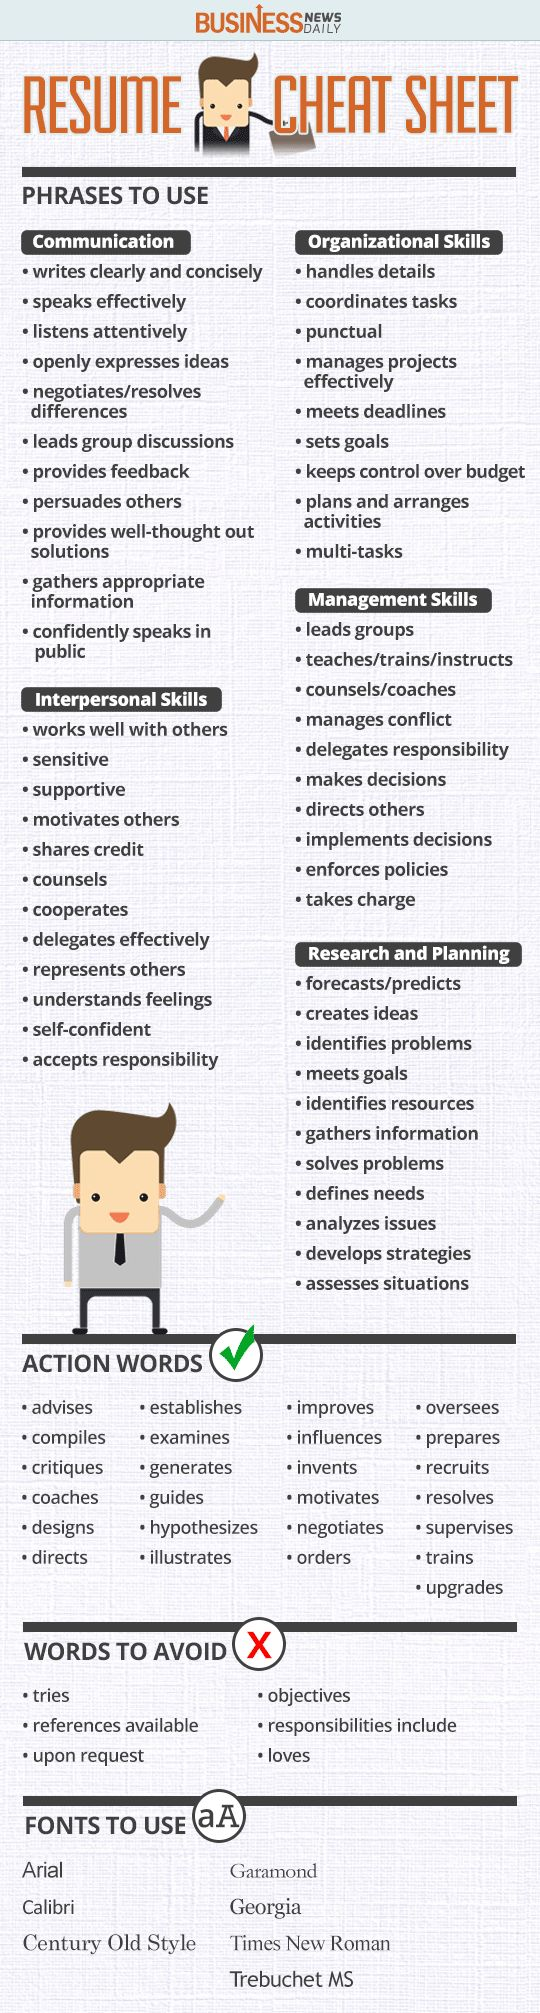 Opposenewapstandardsus  Marvelous  Ideas About Resume On Pinterest  Cv Format Resume Cv And  With Fetching Resume Cheat Sheet Infographic Andrews Almost Done With A Complete Unit On Employment Which With Endearing Resume For Sales Manager Also Waiter Job Description Resume In Addition How To Properly Write A Resume And College Resume Examples For High School Seniors As Well As Sample Of Professional Resume Additionally Sample Administrative Resume From Pinterestcom With Opposenewapstandardsus  Fetching  Ideas About Resume On Pinterest  Cv Format Resume Cv And  With Endearing Resume Cheat Sheet Infographic Andrews Almost Done With A Complete Unit On Employment Which And Marvelous Resume For Sales Manager Also Waiter Job Description Resume In Addition How To Properly Write A Resume From Pinterestcom